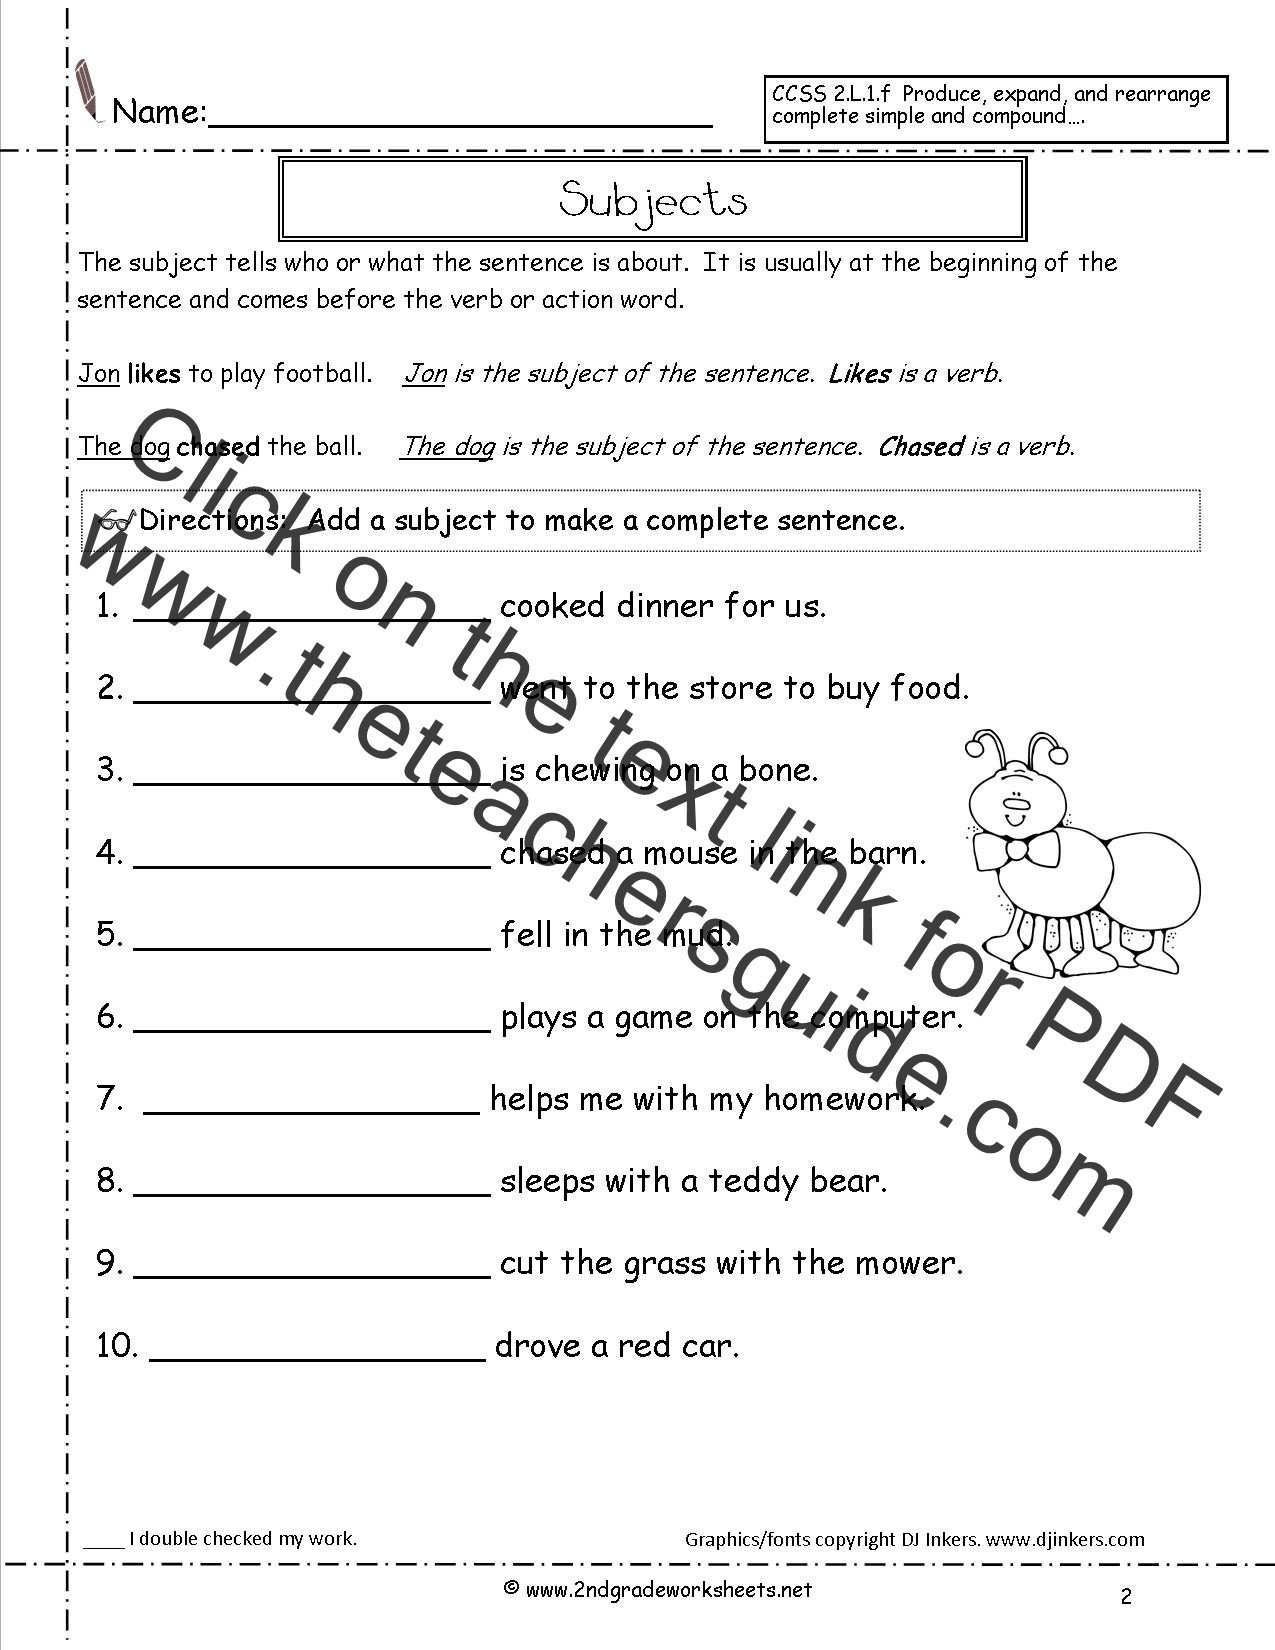 Complete Sentence Worksheets 3rd Grade Second Grade Sentences Worksheets Ccss 2 L 1 F Worksheets